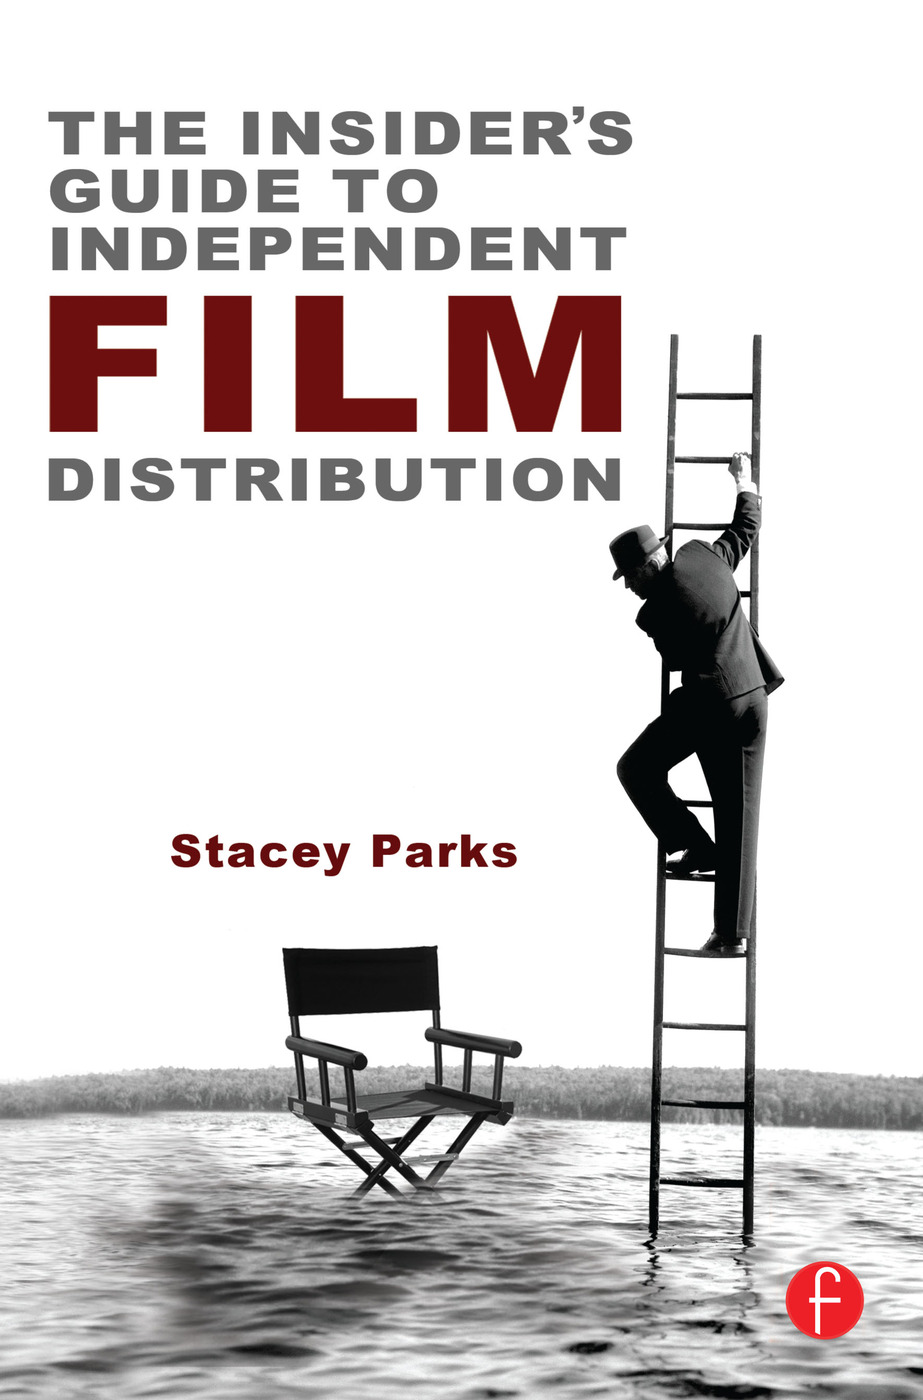 The Insider's Guide to Independent Film Distribution book cover